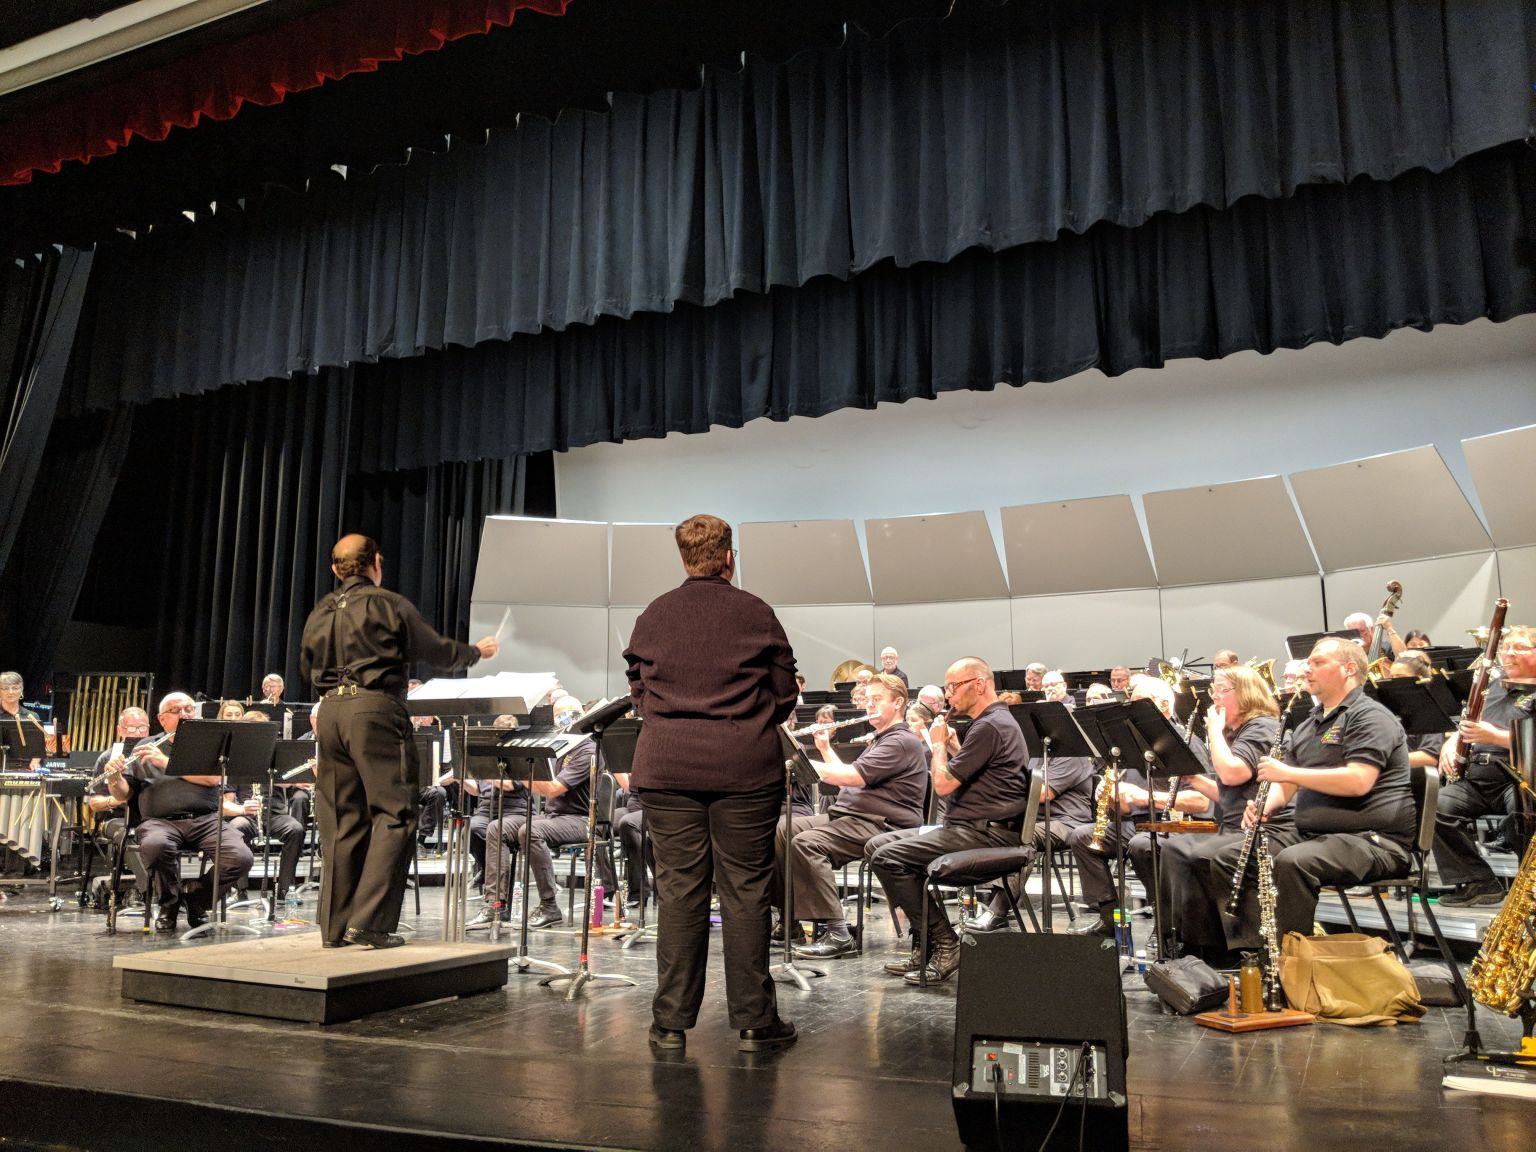 Woman Composer to Lead Local Concert Band for the First Time